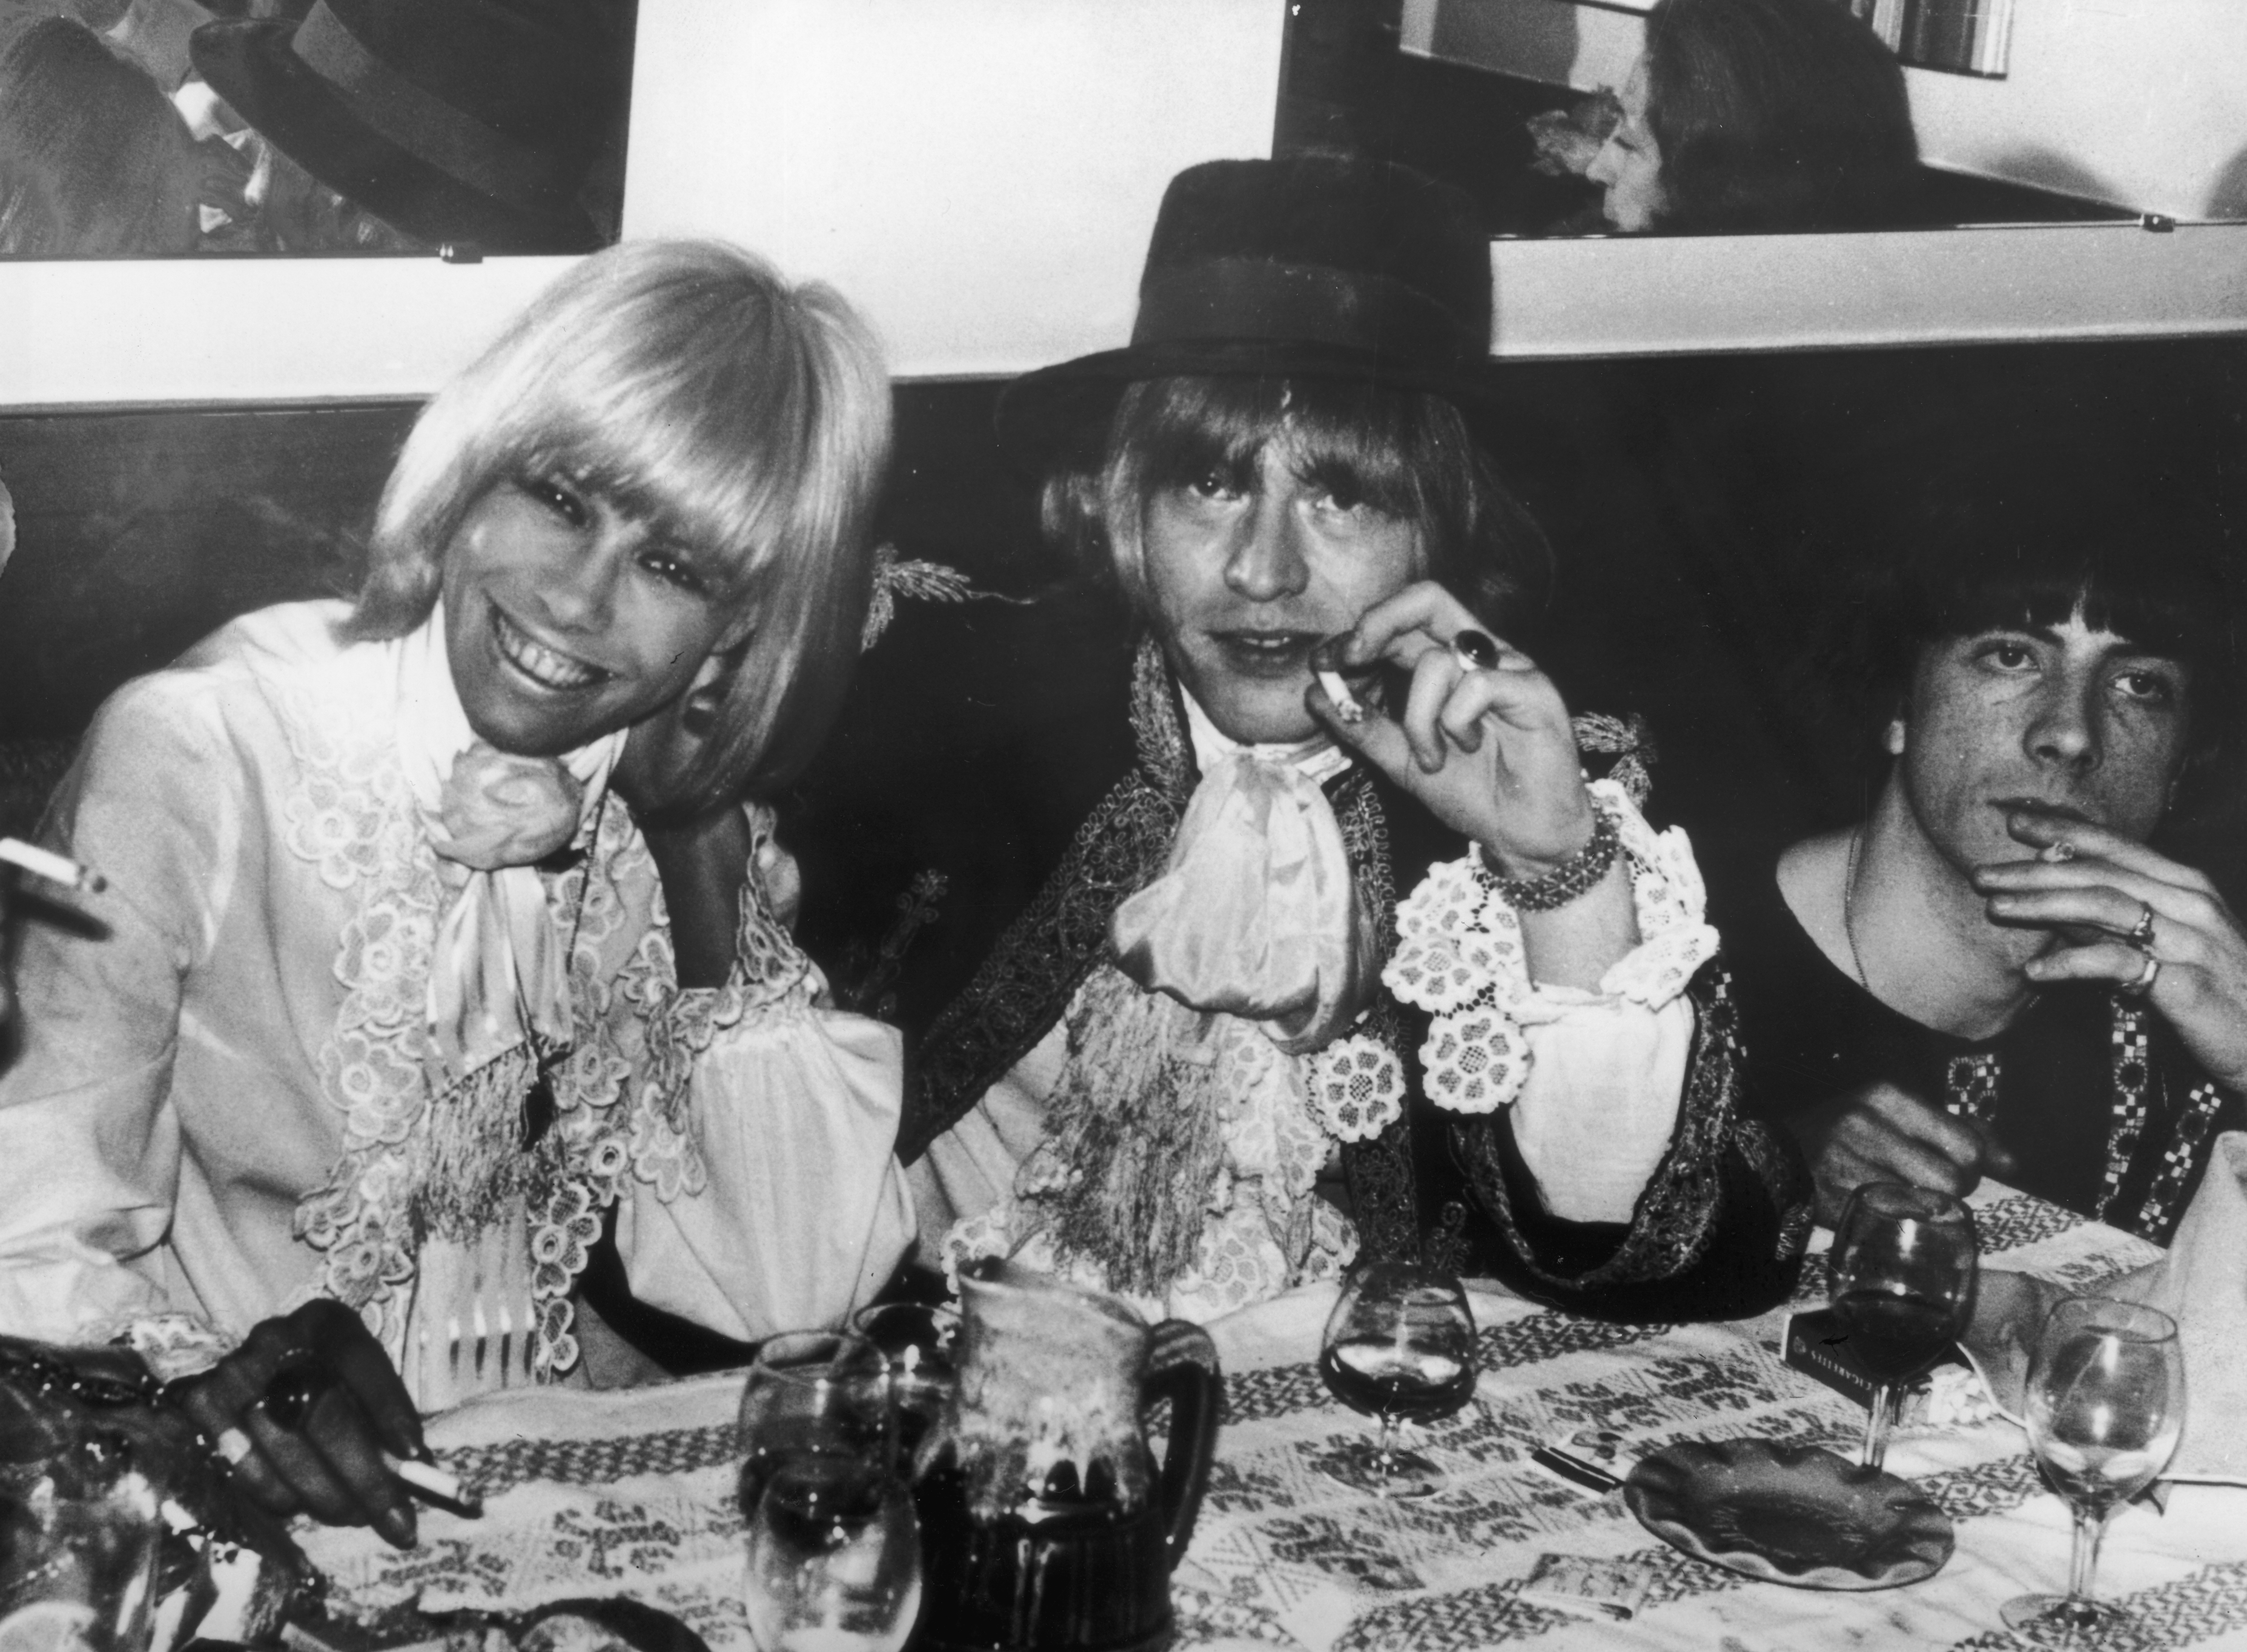 Anita Pallenberg and Brian Jones attending a party in Cannes during the film festival.